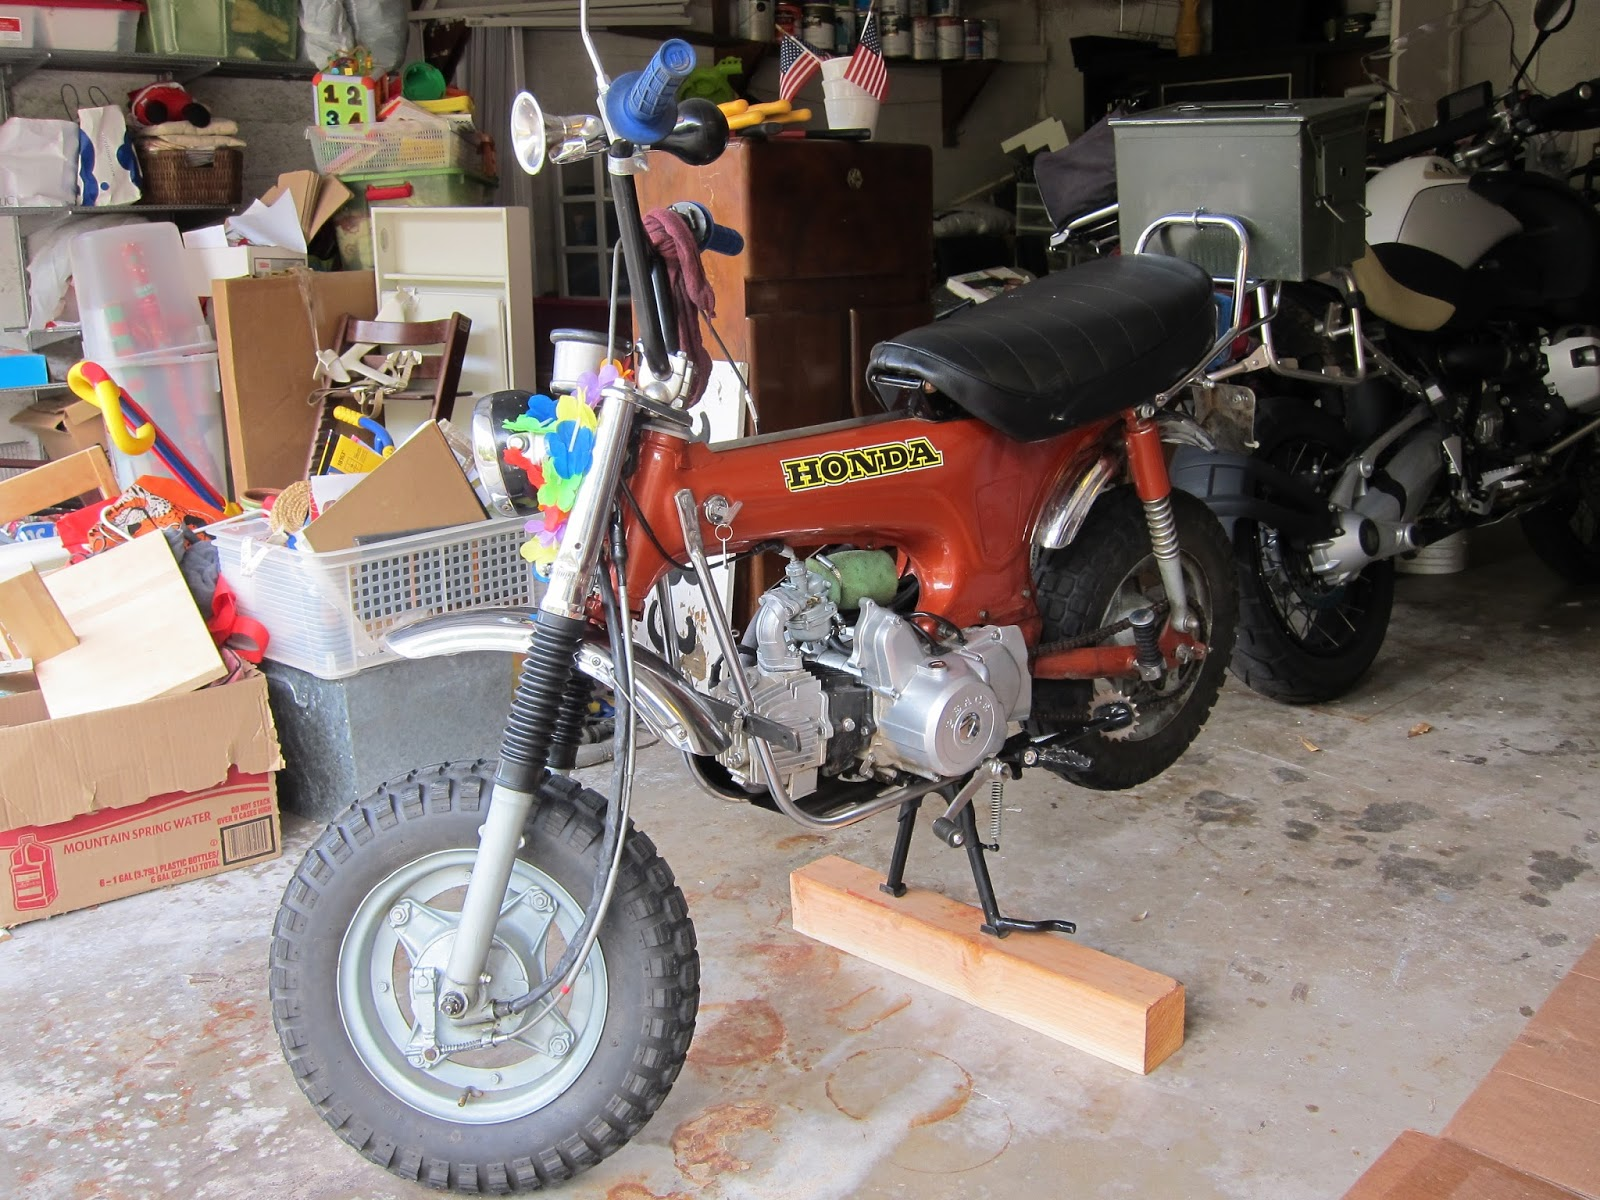 My Honda Trail 70 And Street Legal Conversion Tips 1970 Ct70 Specs 110cc Semi Auto Engine Newly Added Rack With Ammo Can Summer 2012